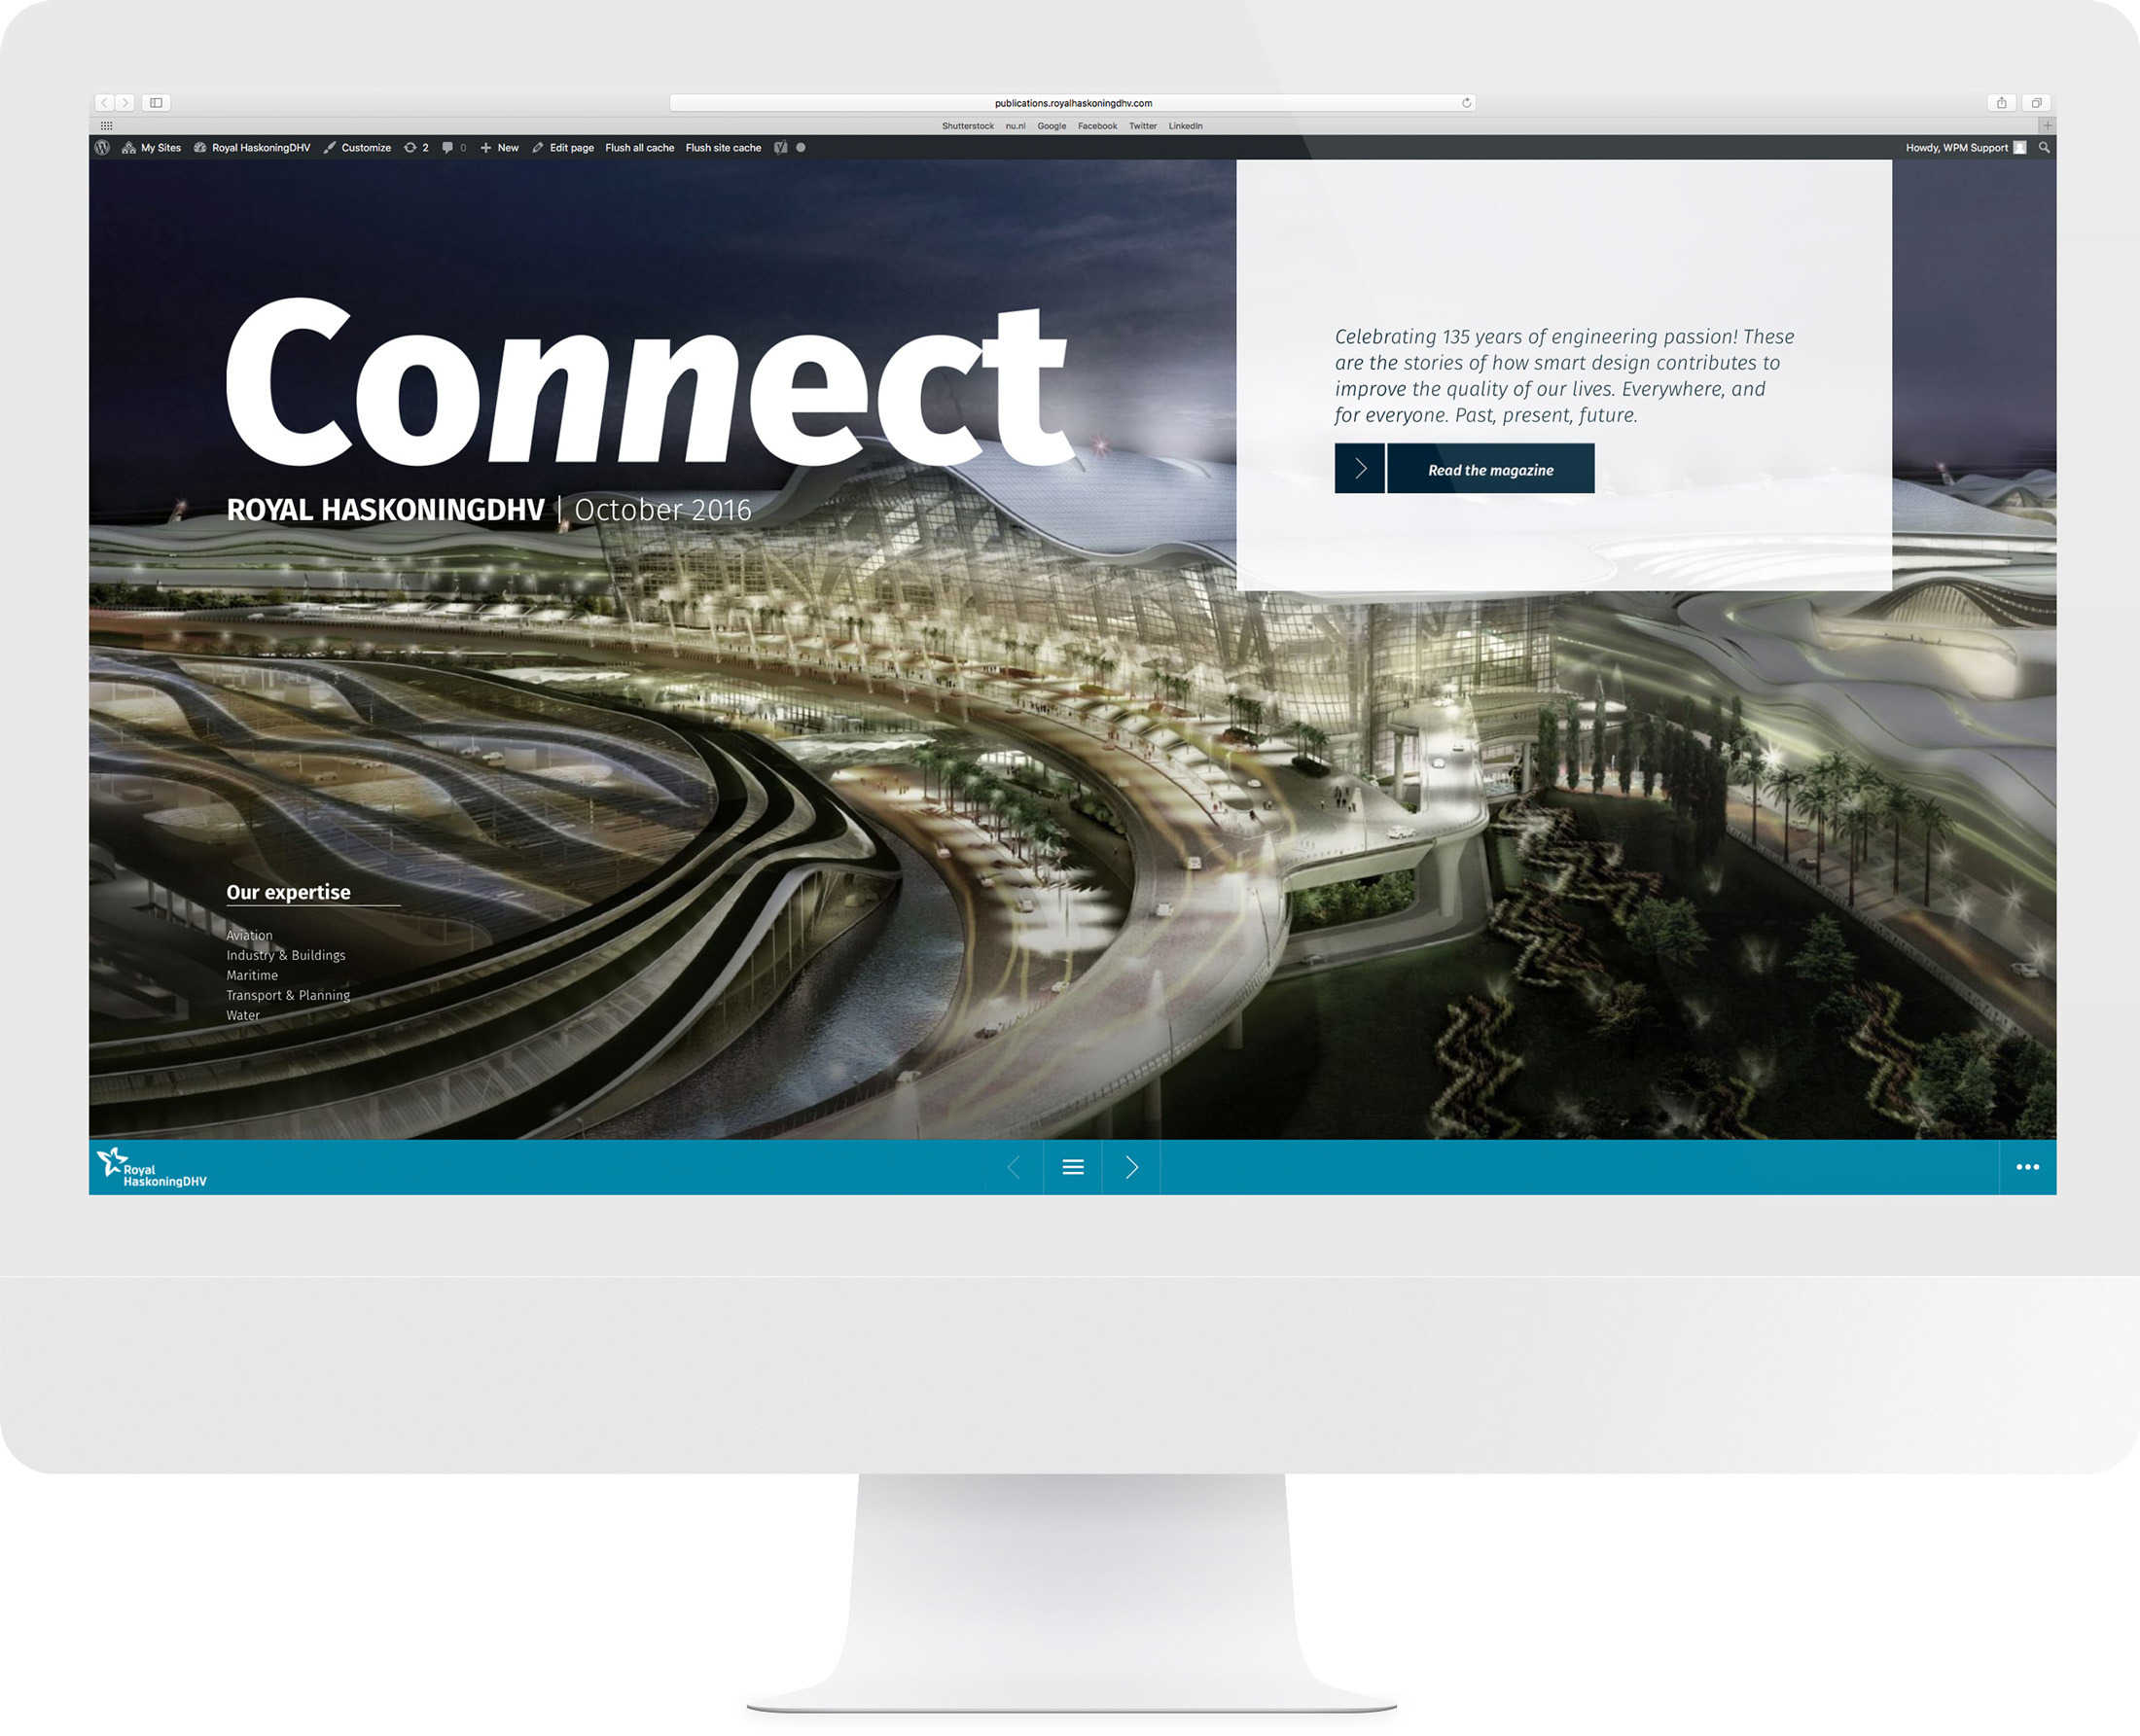 Online magazine Connect Royal HaskoningDHV DutchGiraffe